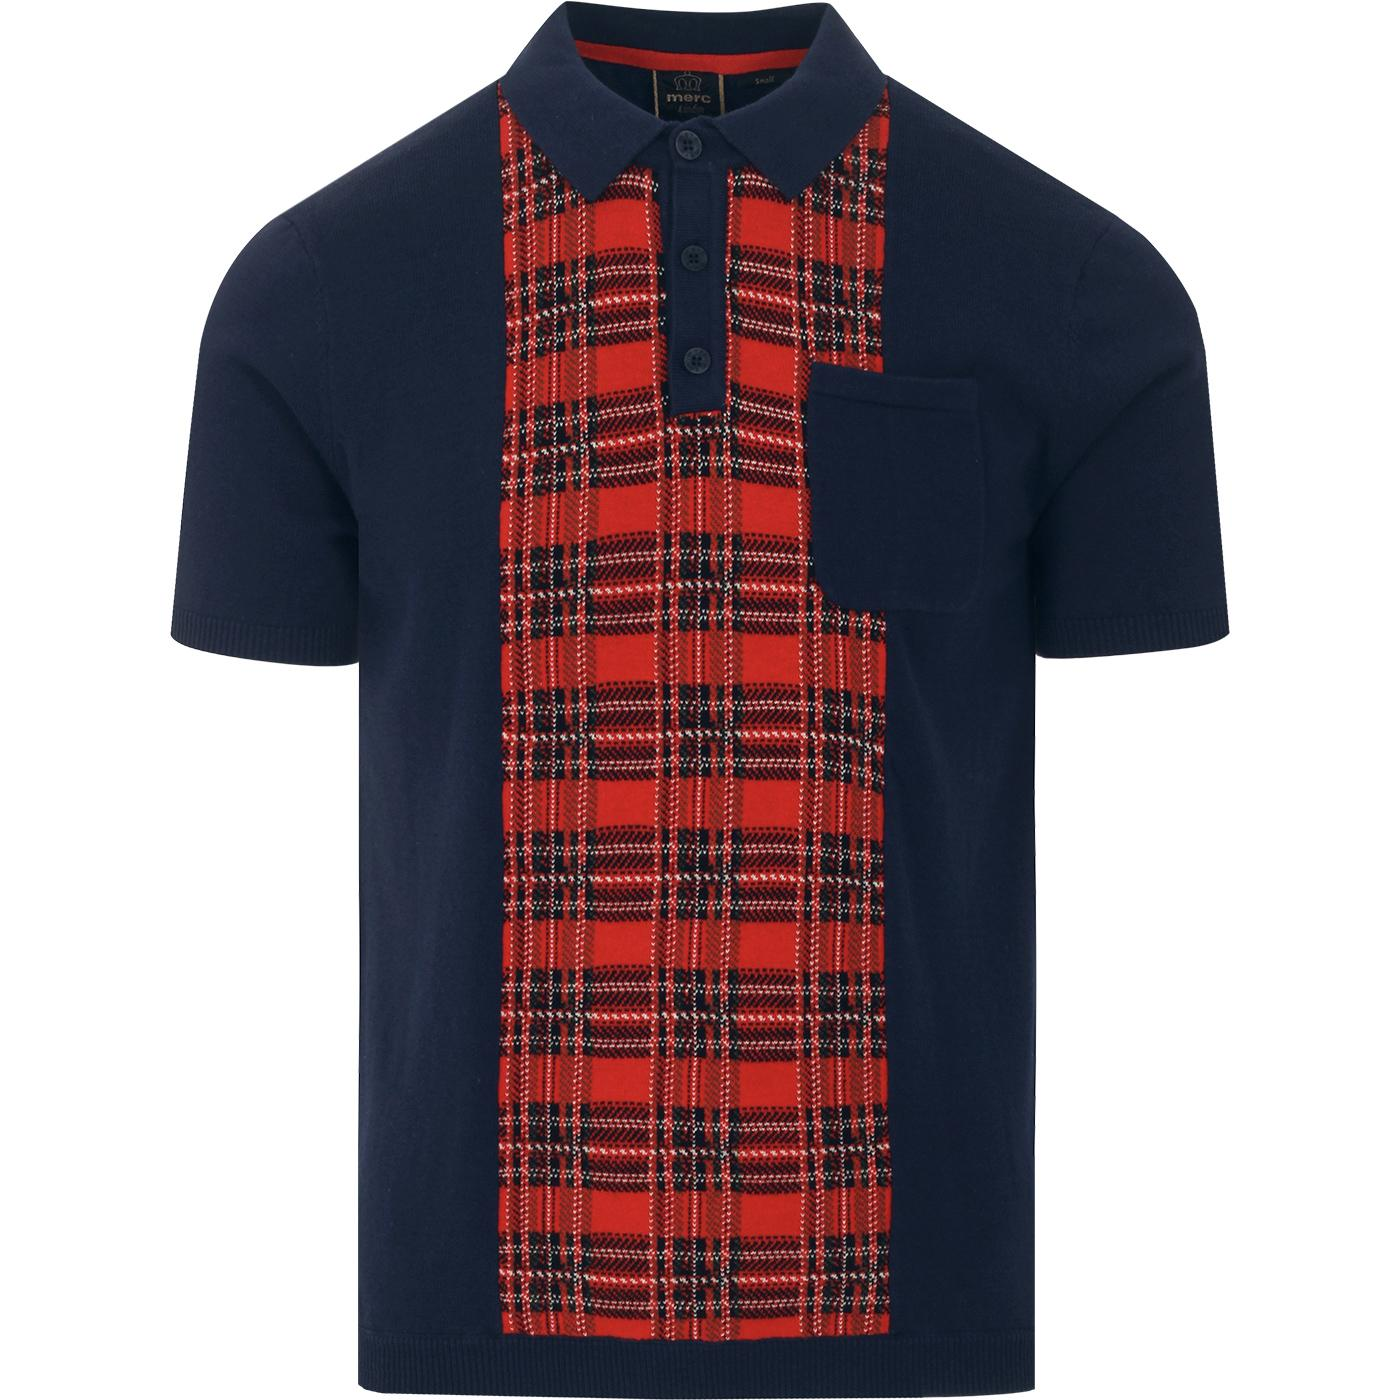 Luna MERC Retro Mod Tartan Panel Knit Polo Top (N)